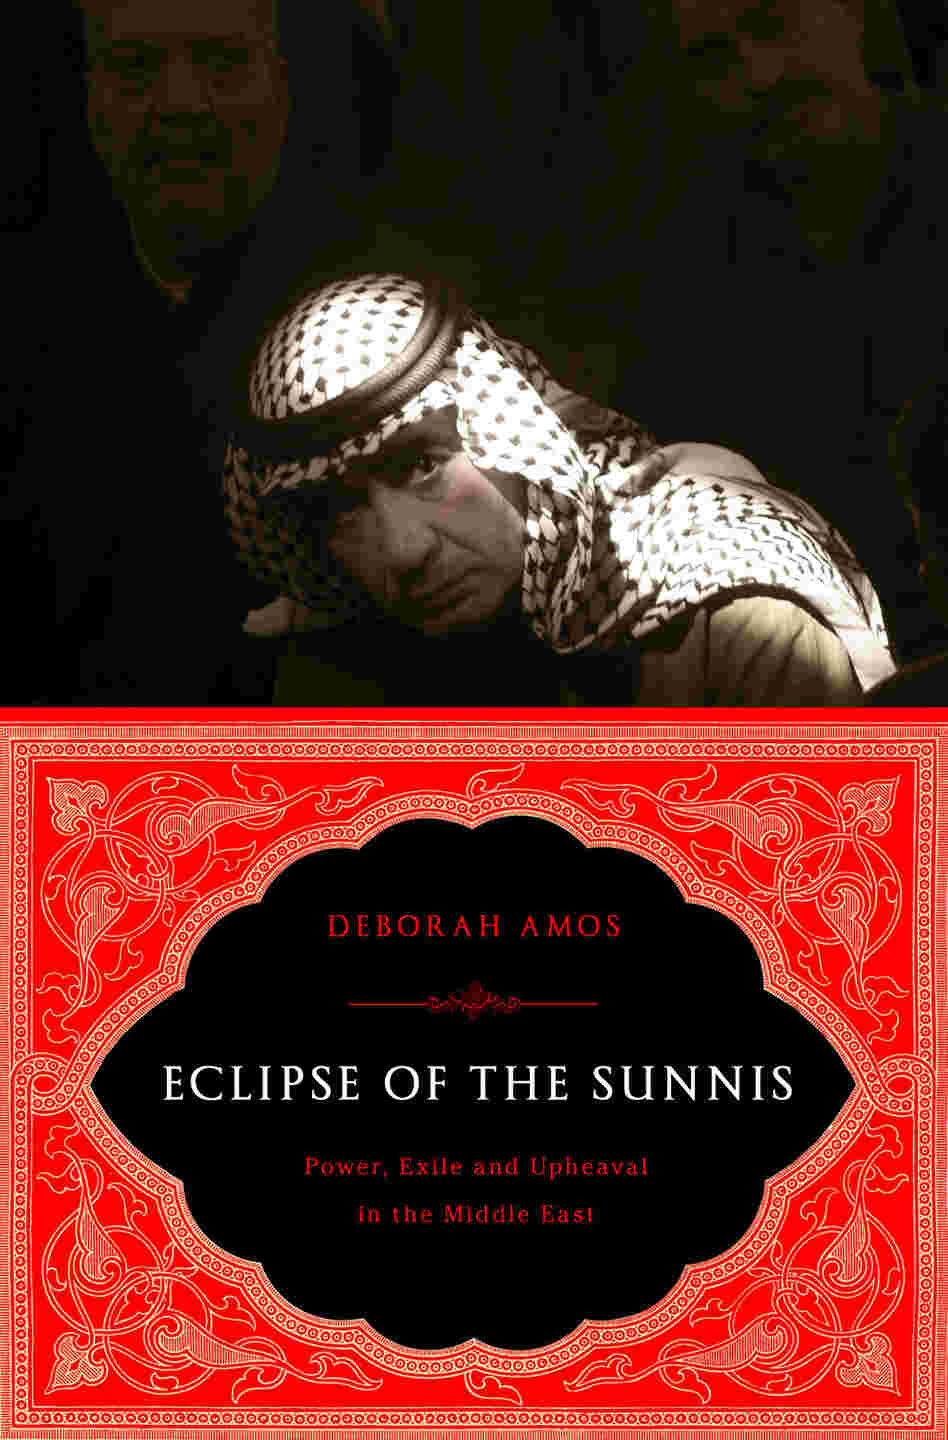 ECLIPSE OF THE SUNNIS